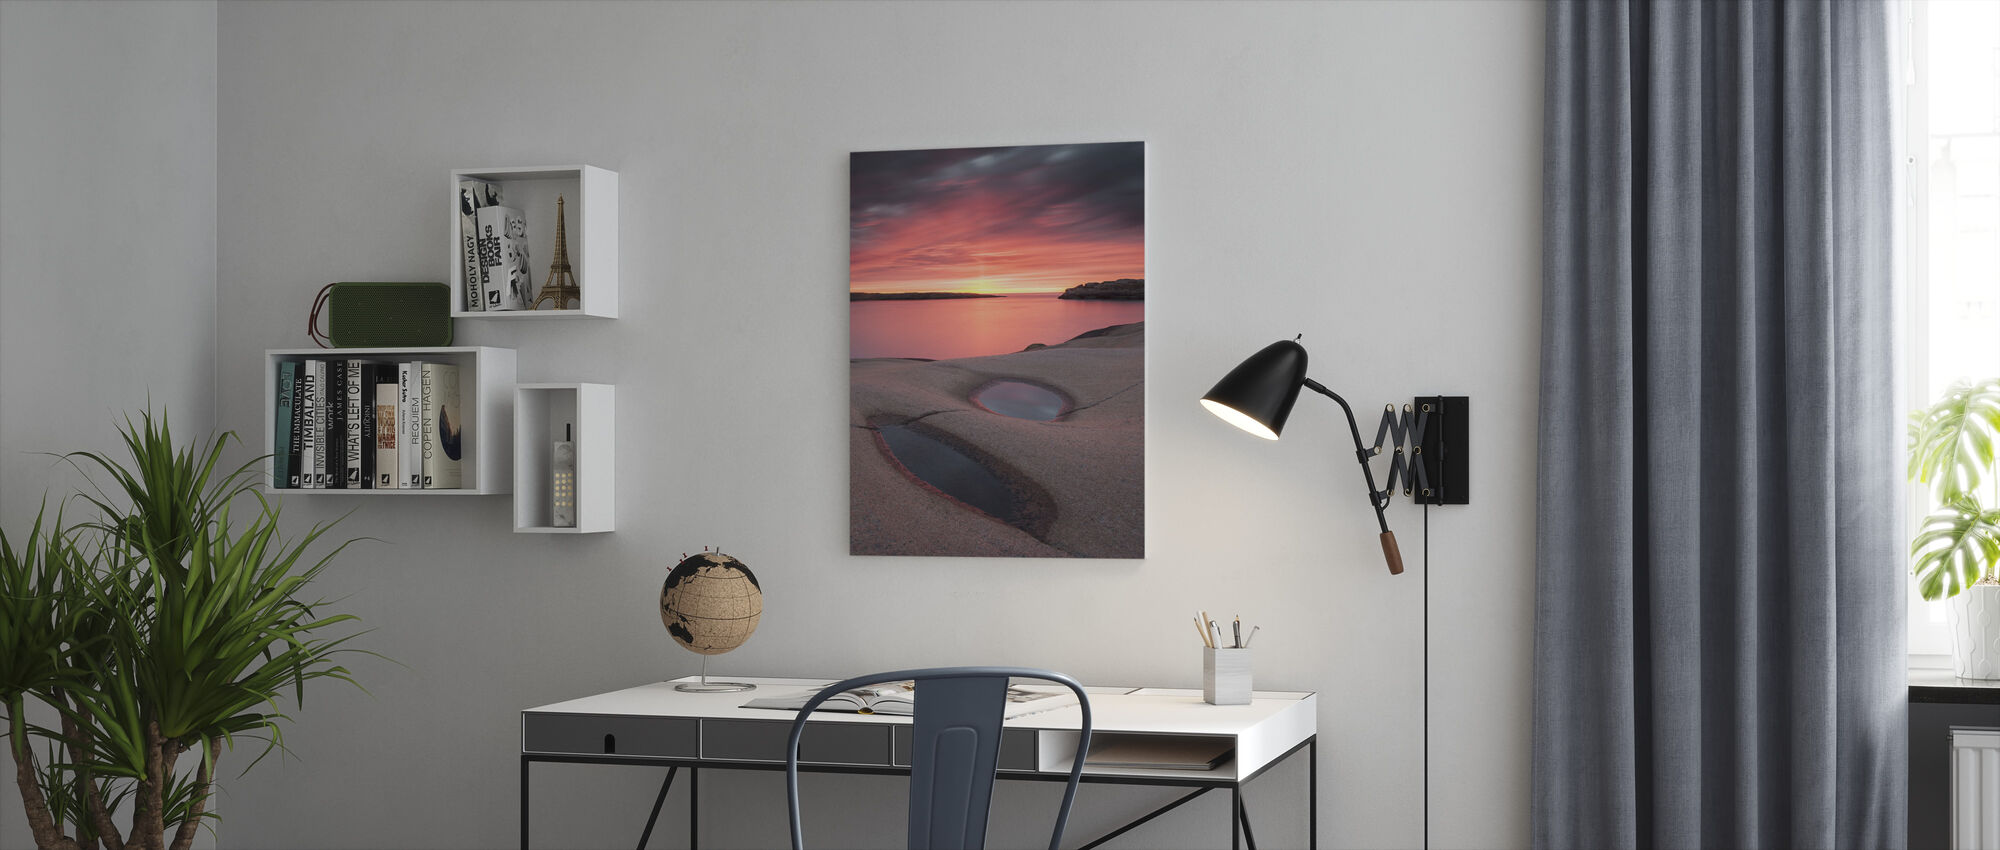 Fantastic Sky - Canvas print - Office